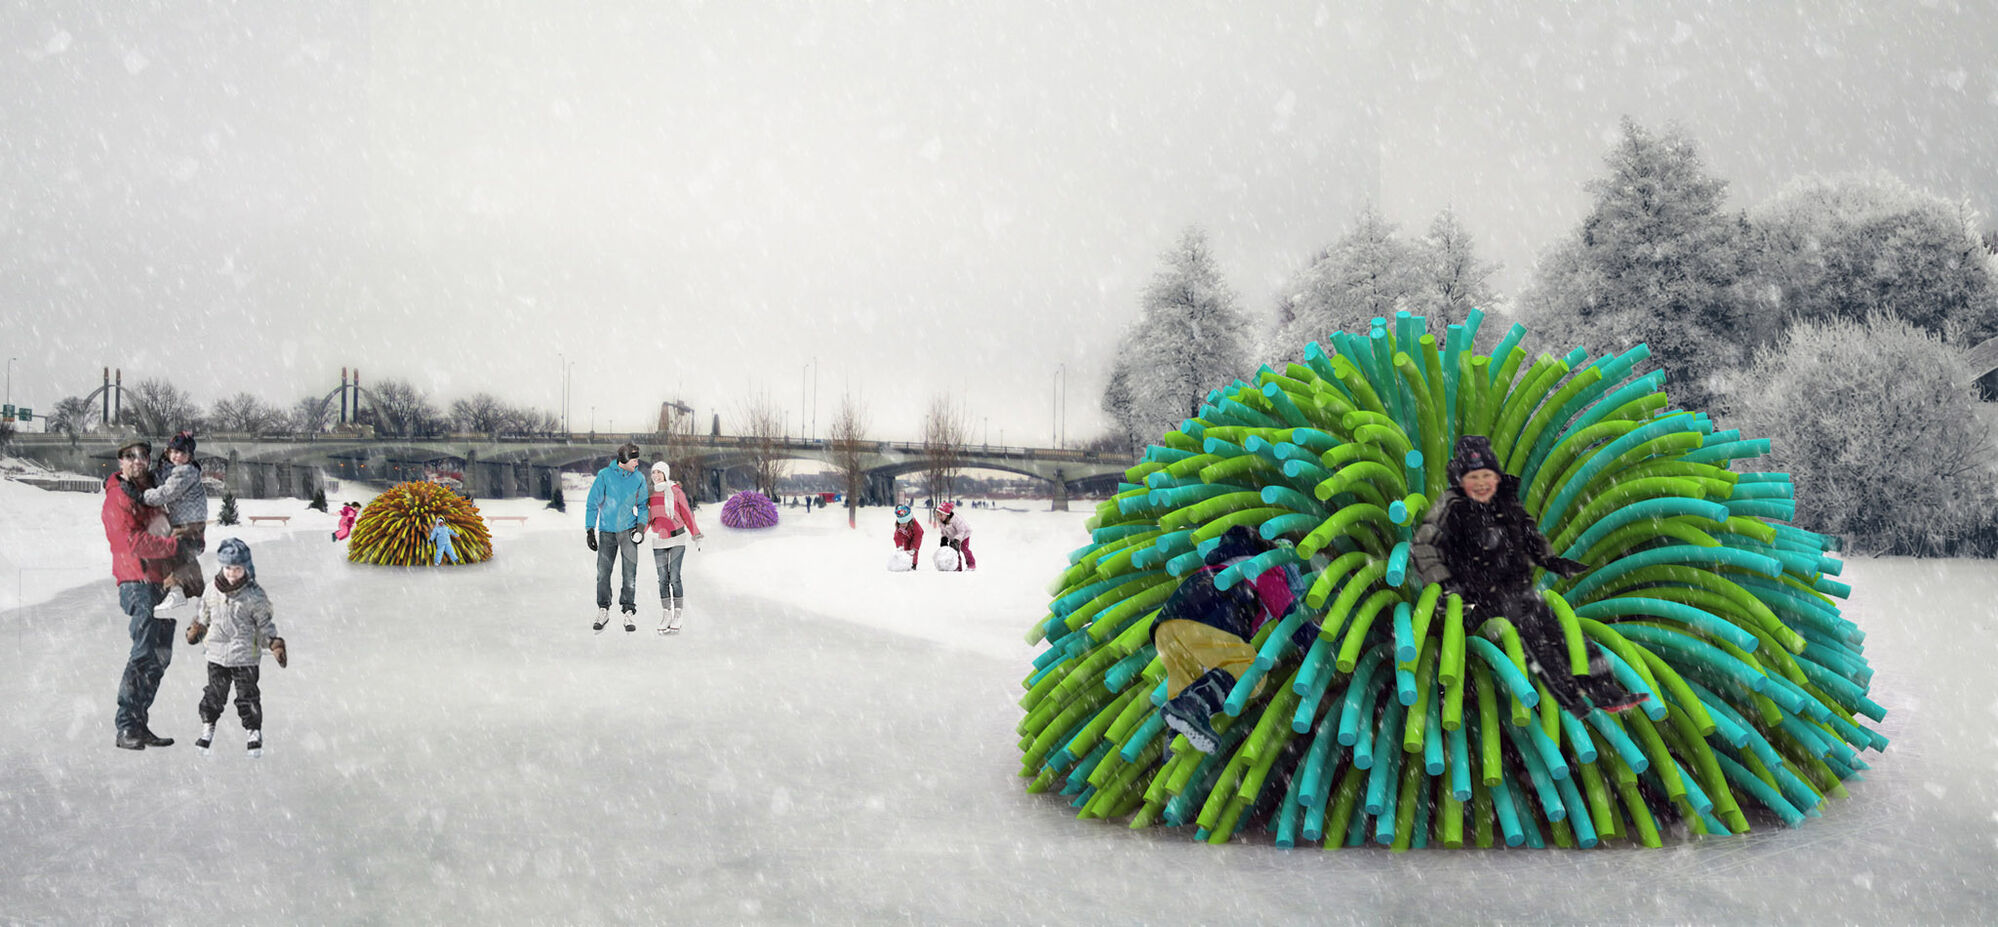 Nuzzle, a shelter made up and hundreds of brightly coloured pool noodles.